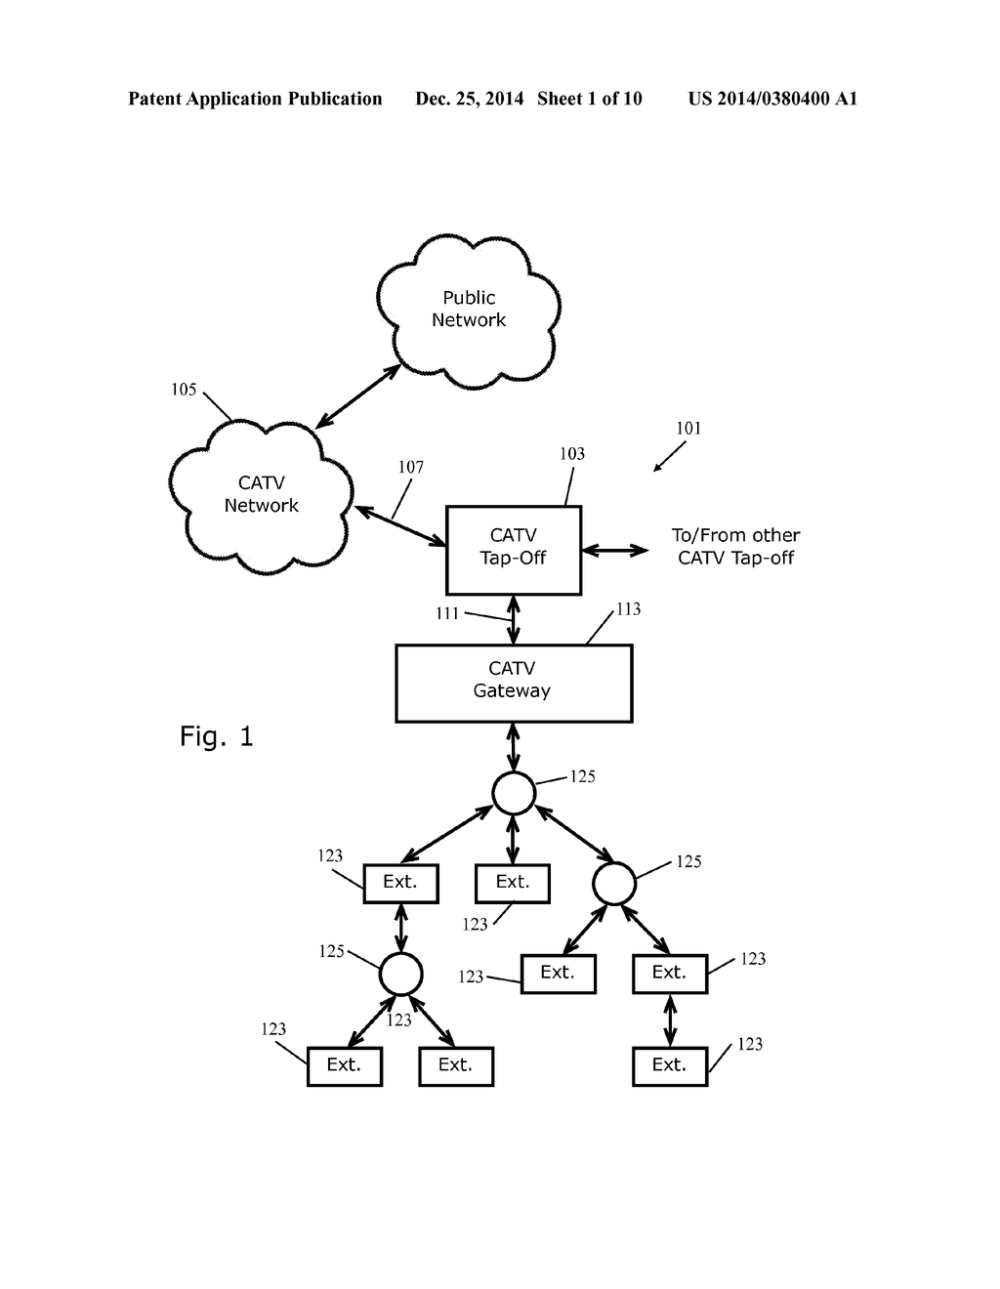 medium resolution of system and method for providing data communication services through a catv tap off device diagram schematic and image 02